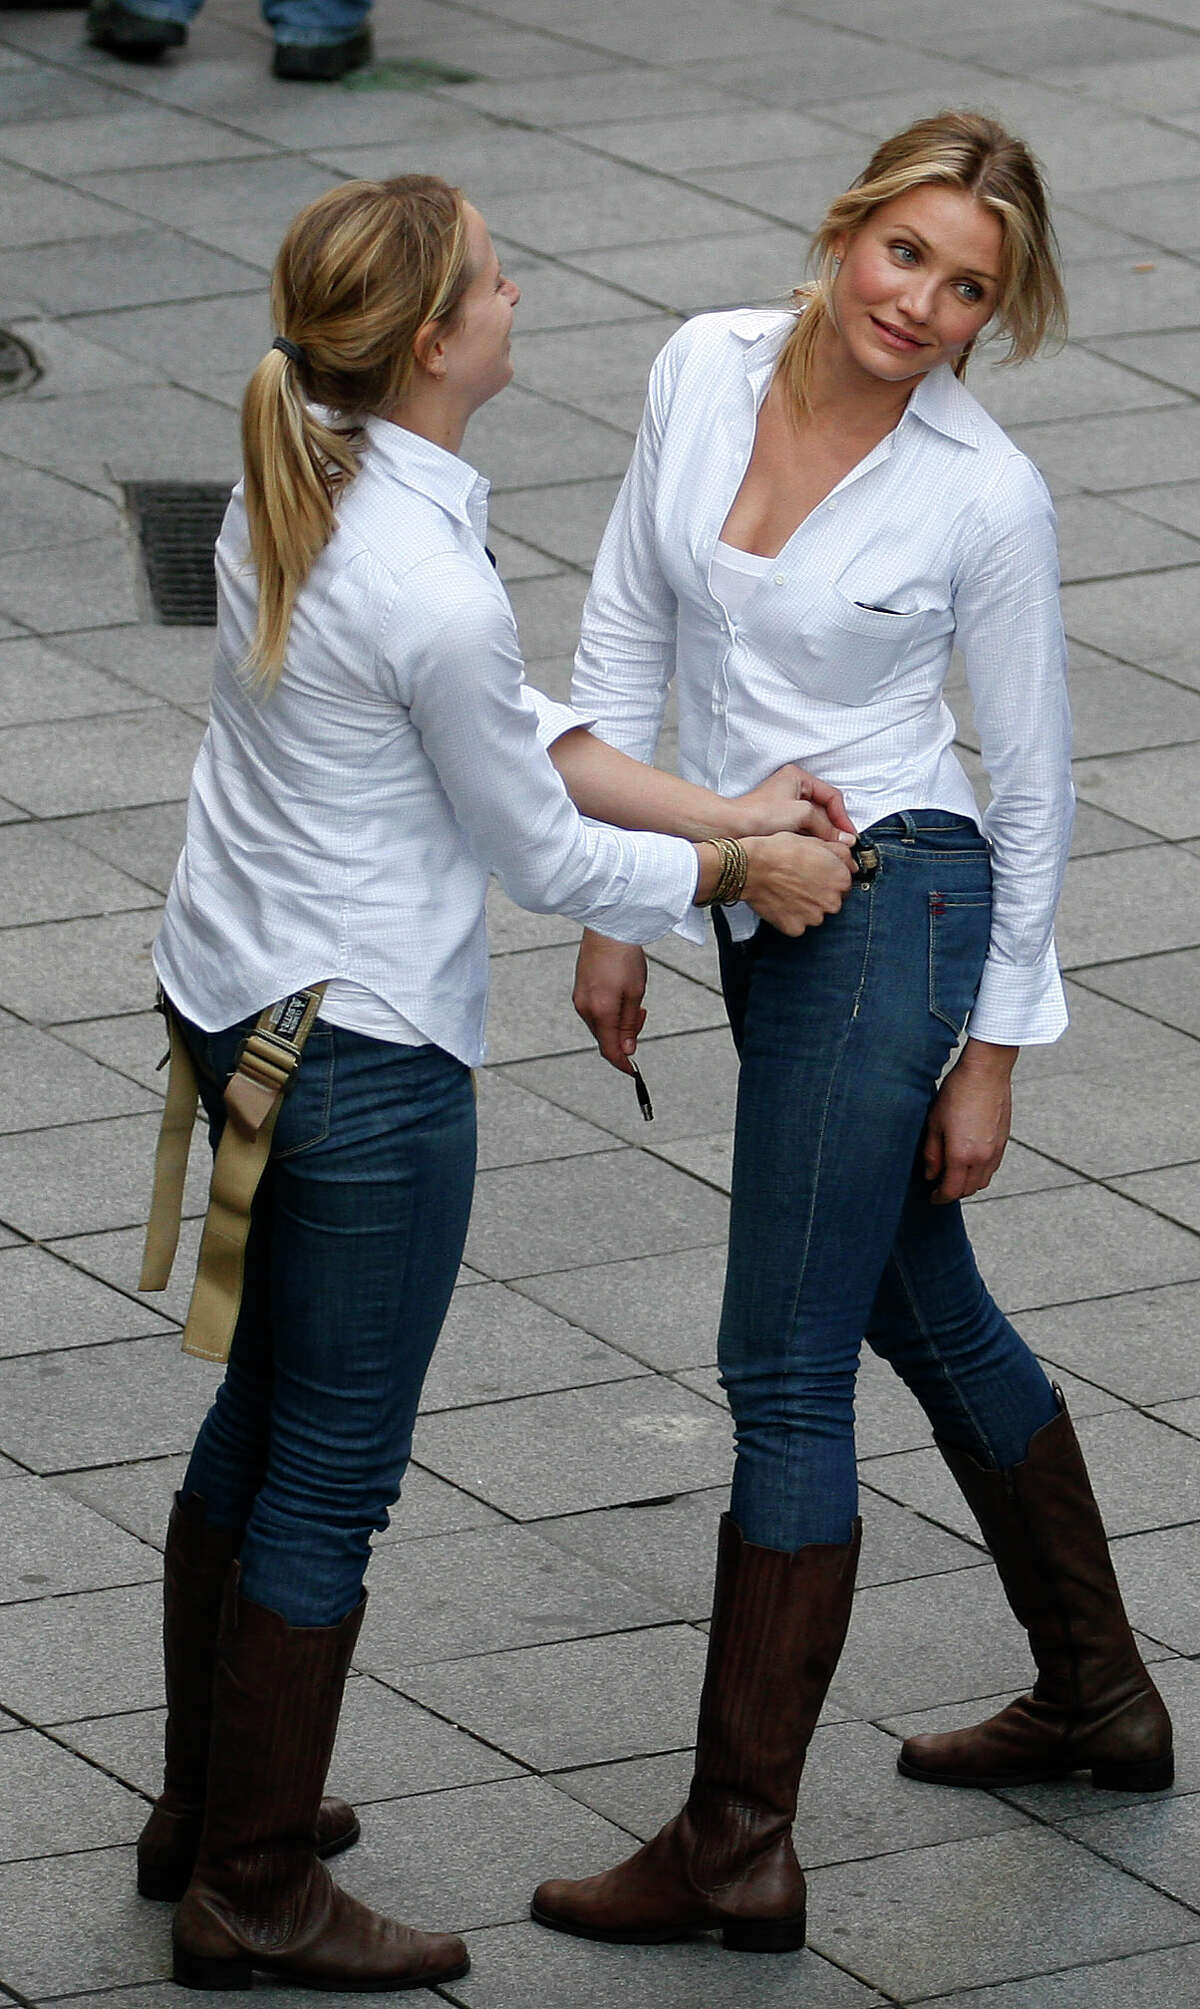 Cameron Diaz (R) and her stunt double seen during the shooting of the film 'Knight and Day' on December 9, 2009 in Seville, Spain.